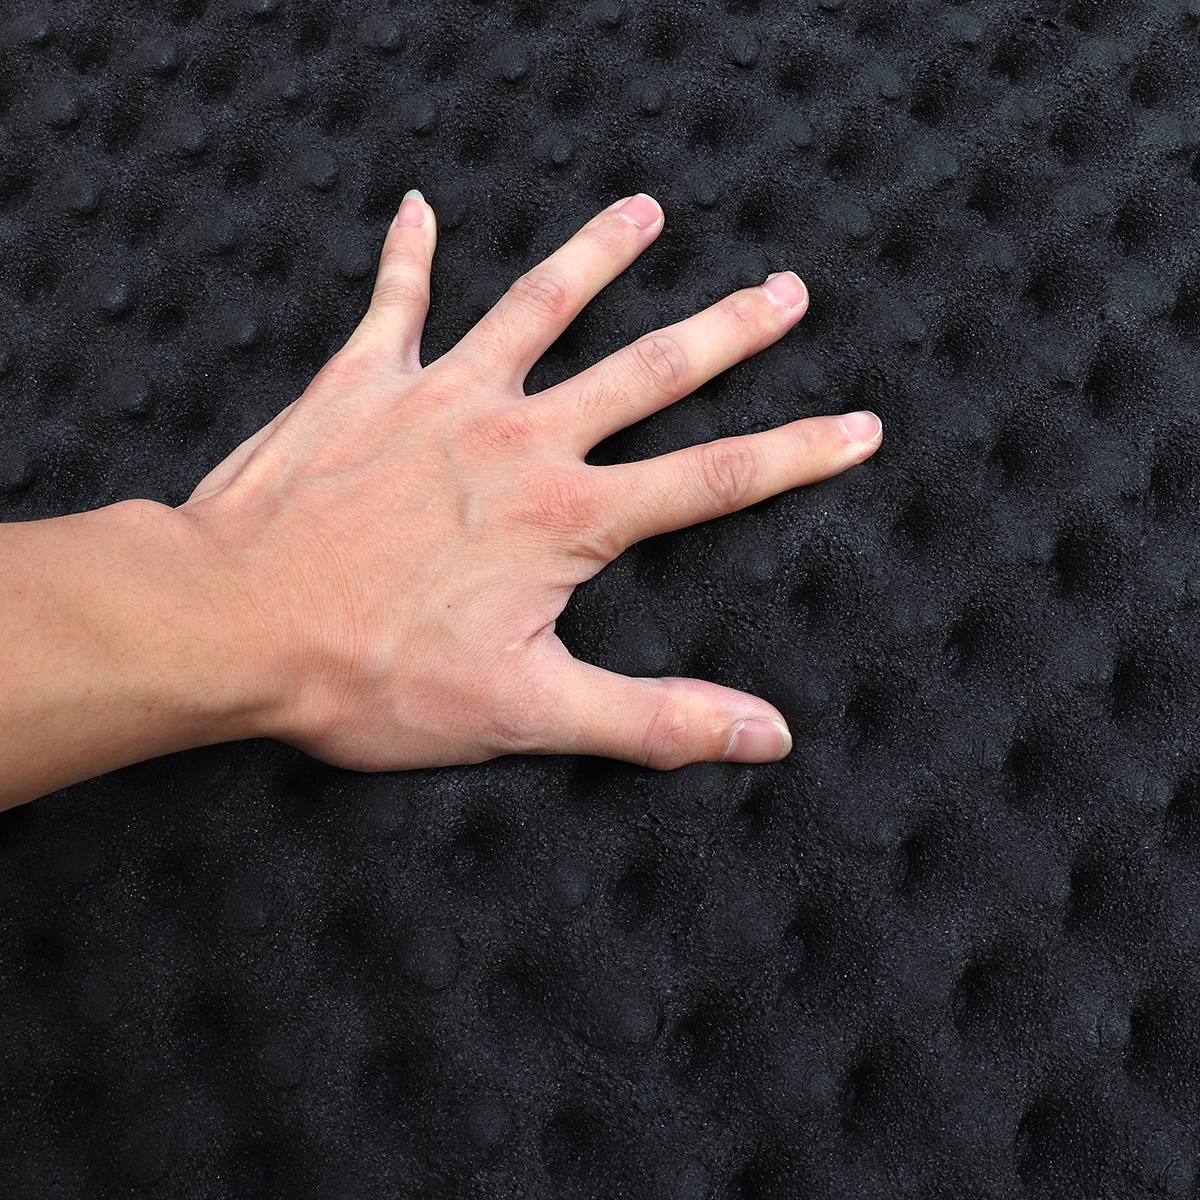 100x100cm Car SoundProof Closed Cell Foam Self Adhesive Acoustic Foam Thermal Insulation Waterproof